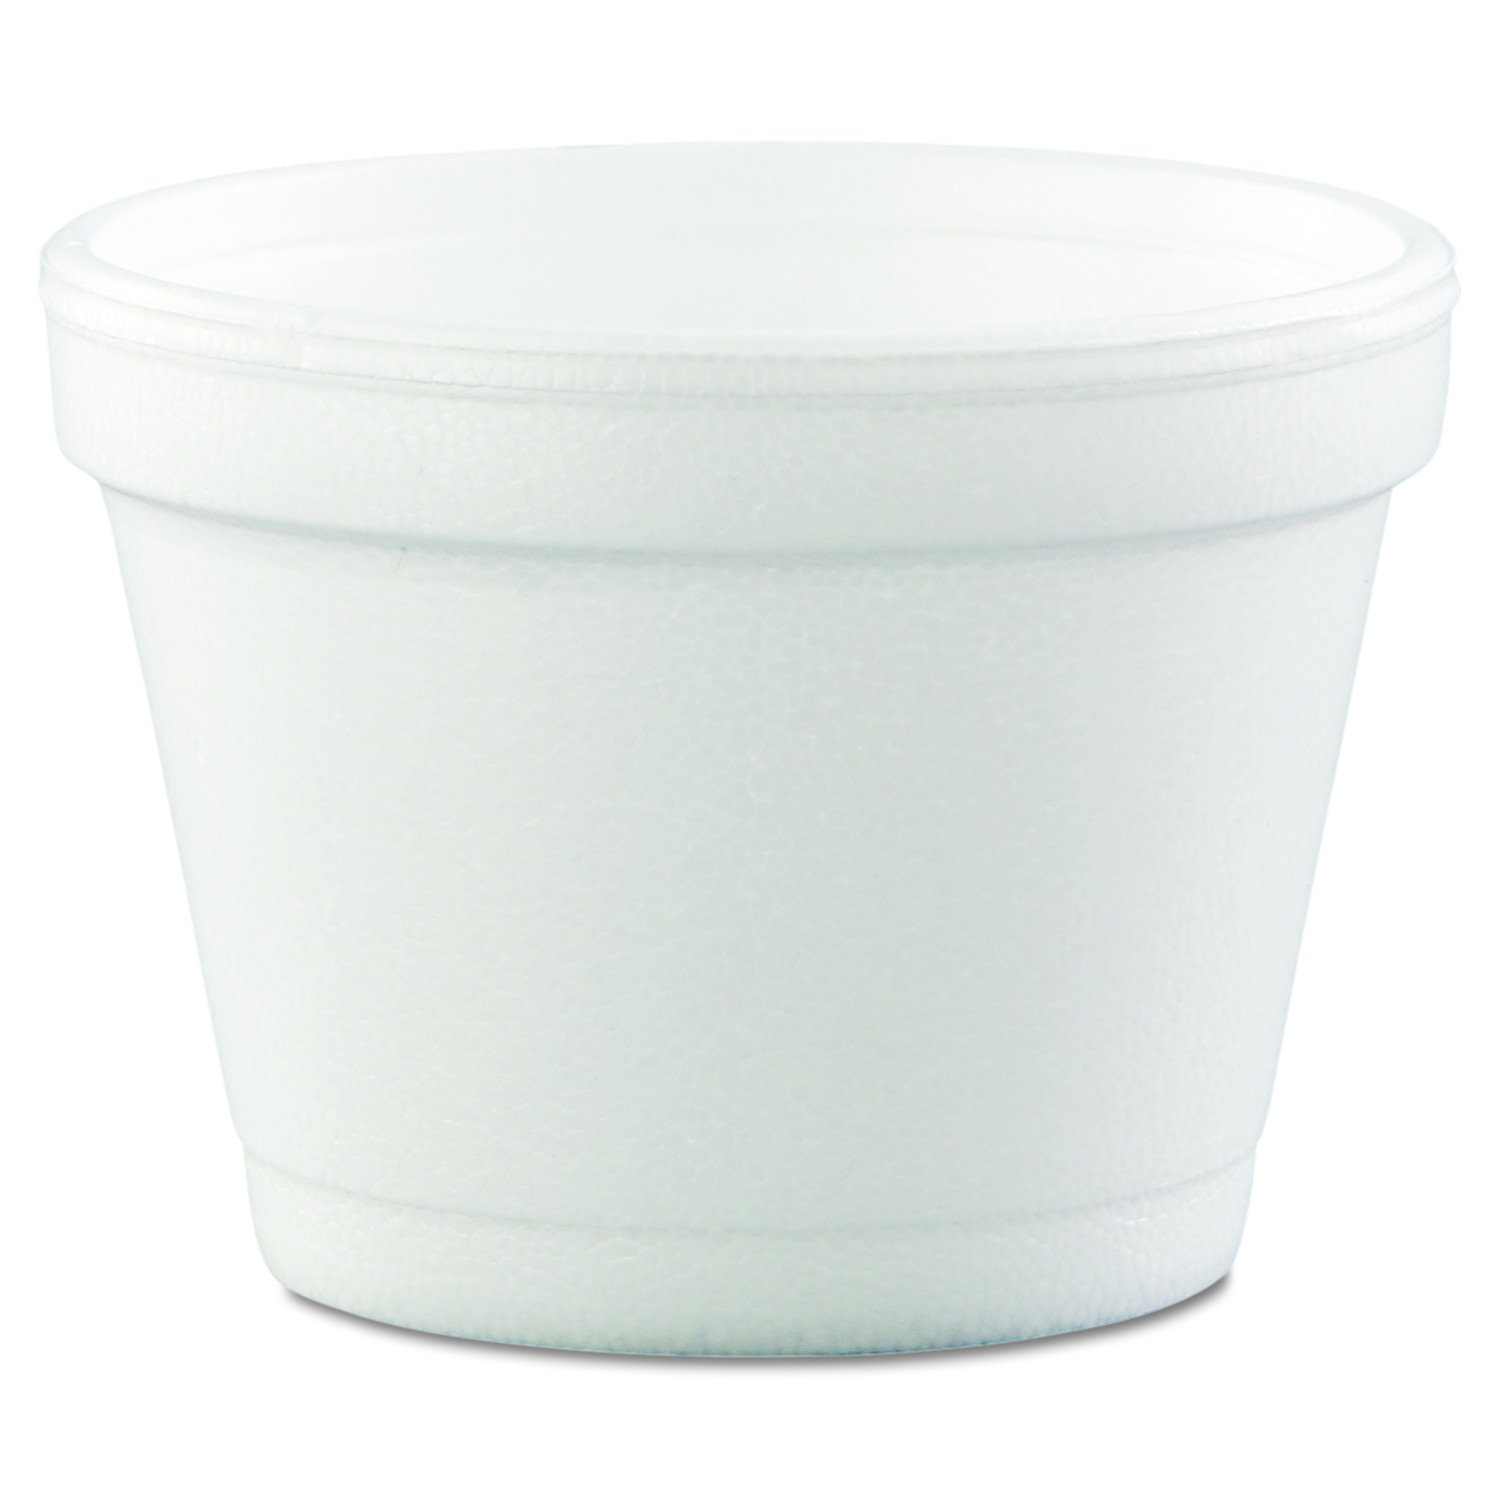 Dart 4J6 Bowl Containers, Foam, 4oz, White (Case of 1000)